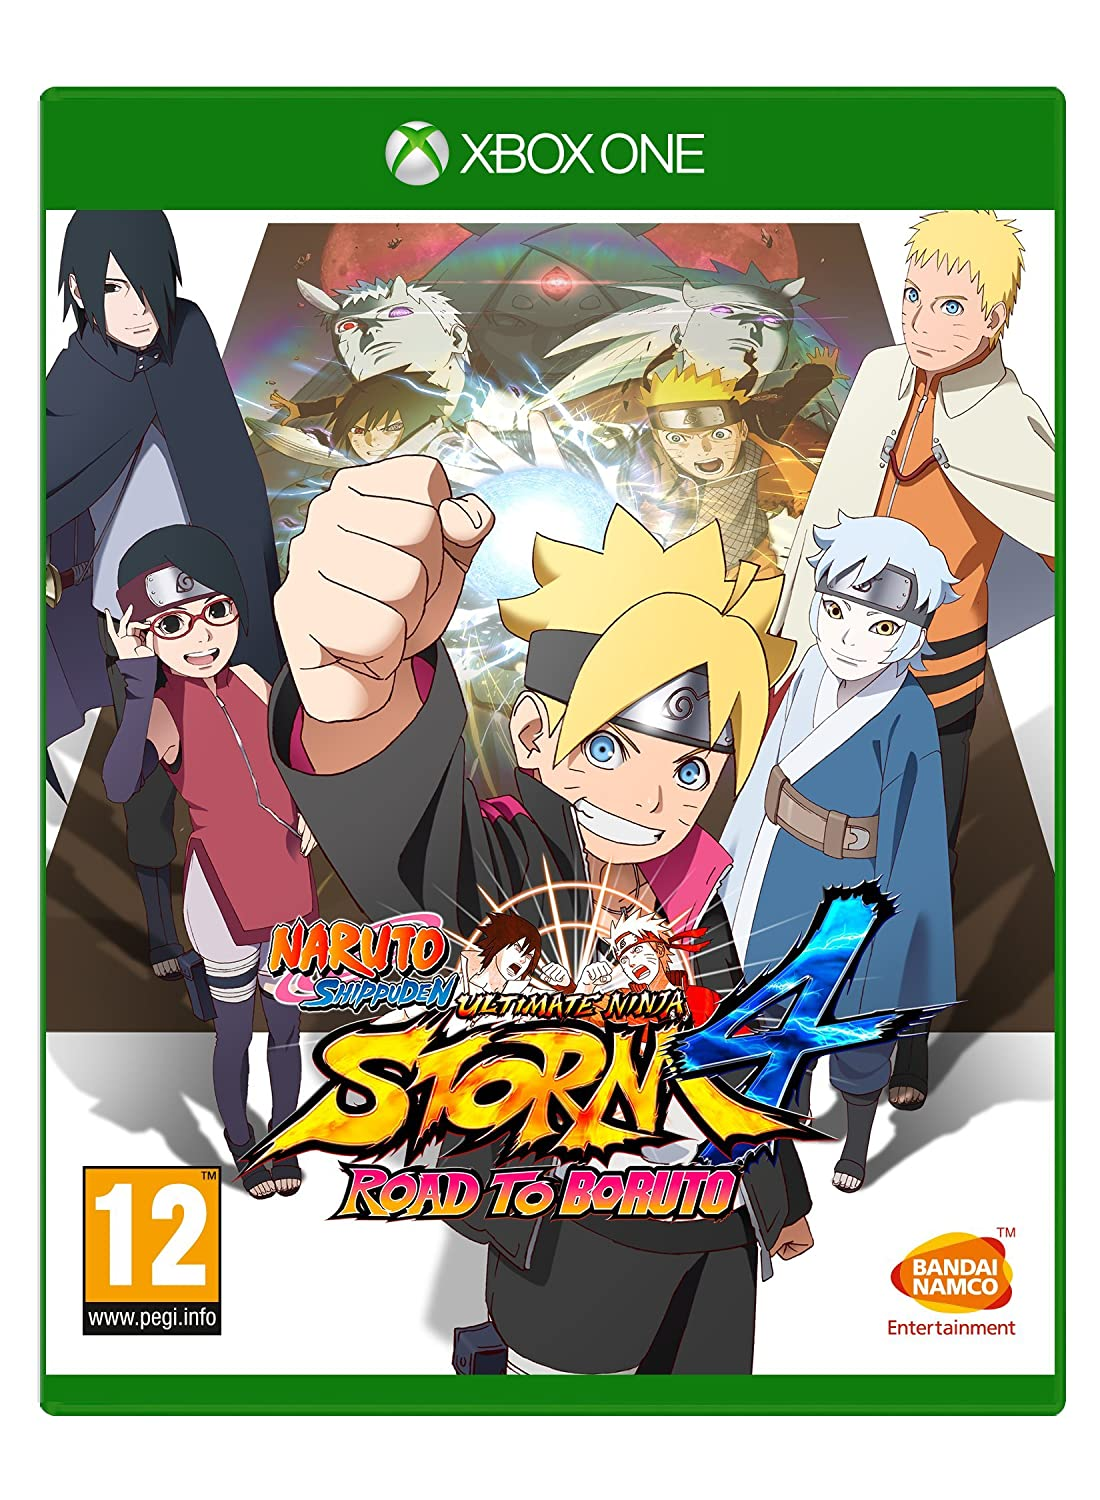 Amazon.com: Naruto Shippuden Ultimate Ninja Storm 4: Road to ...